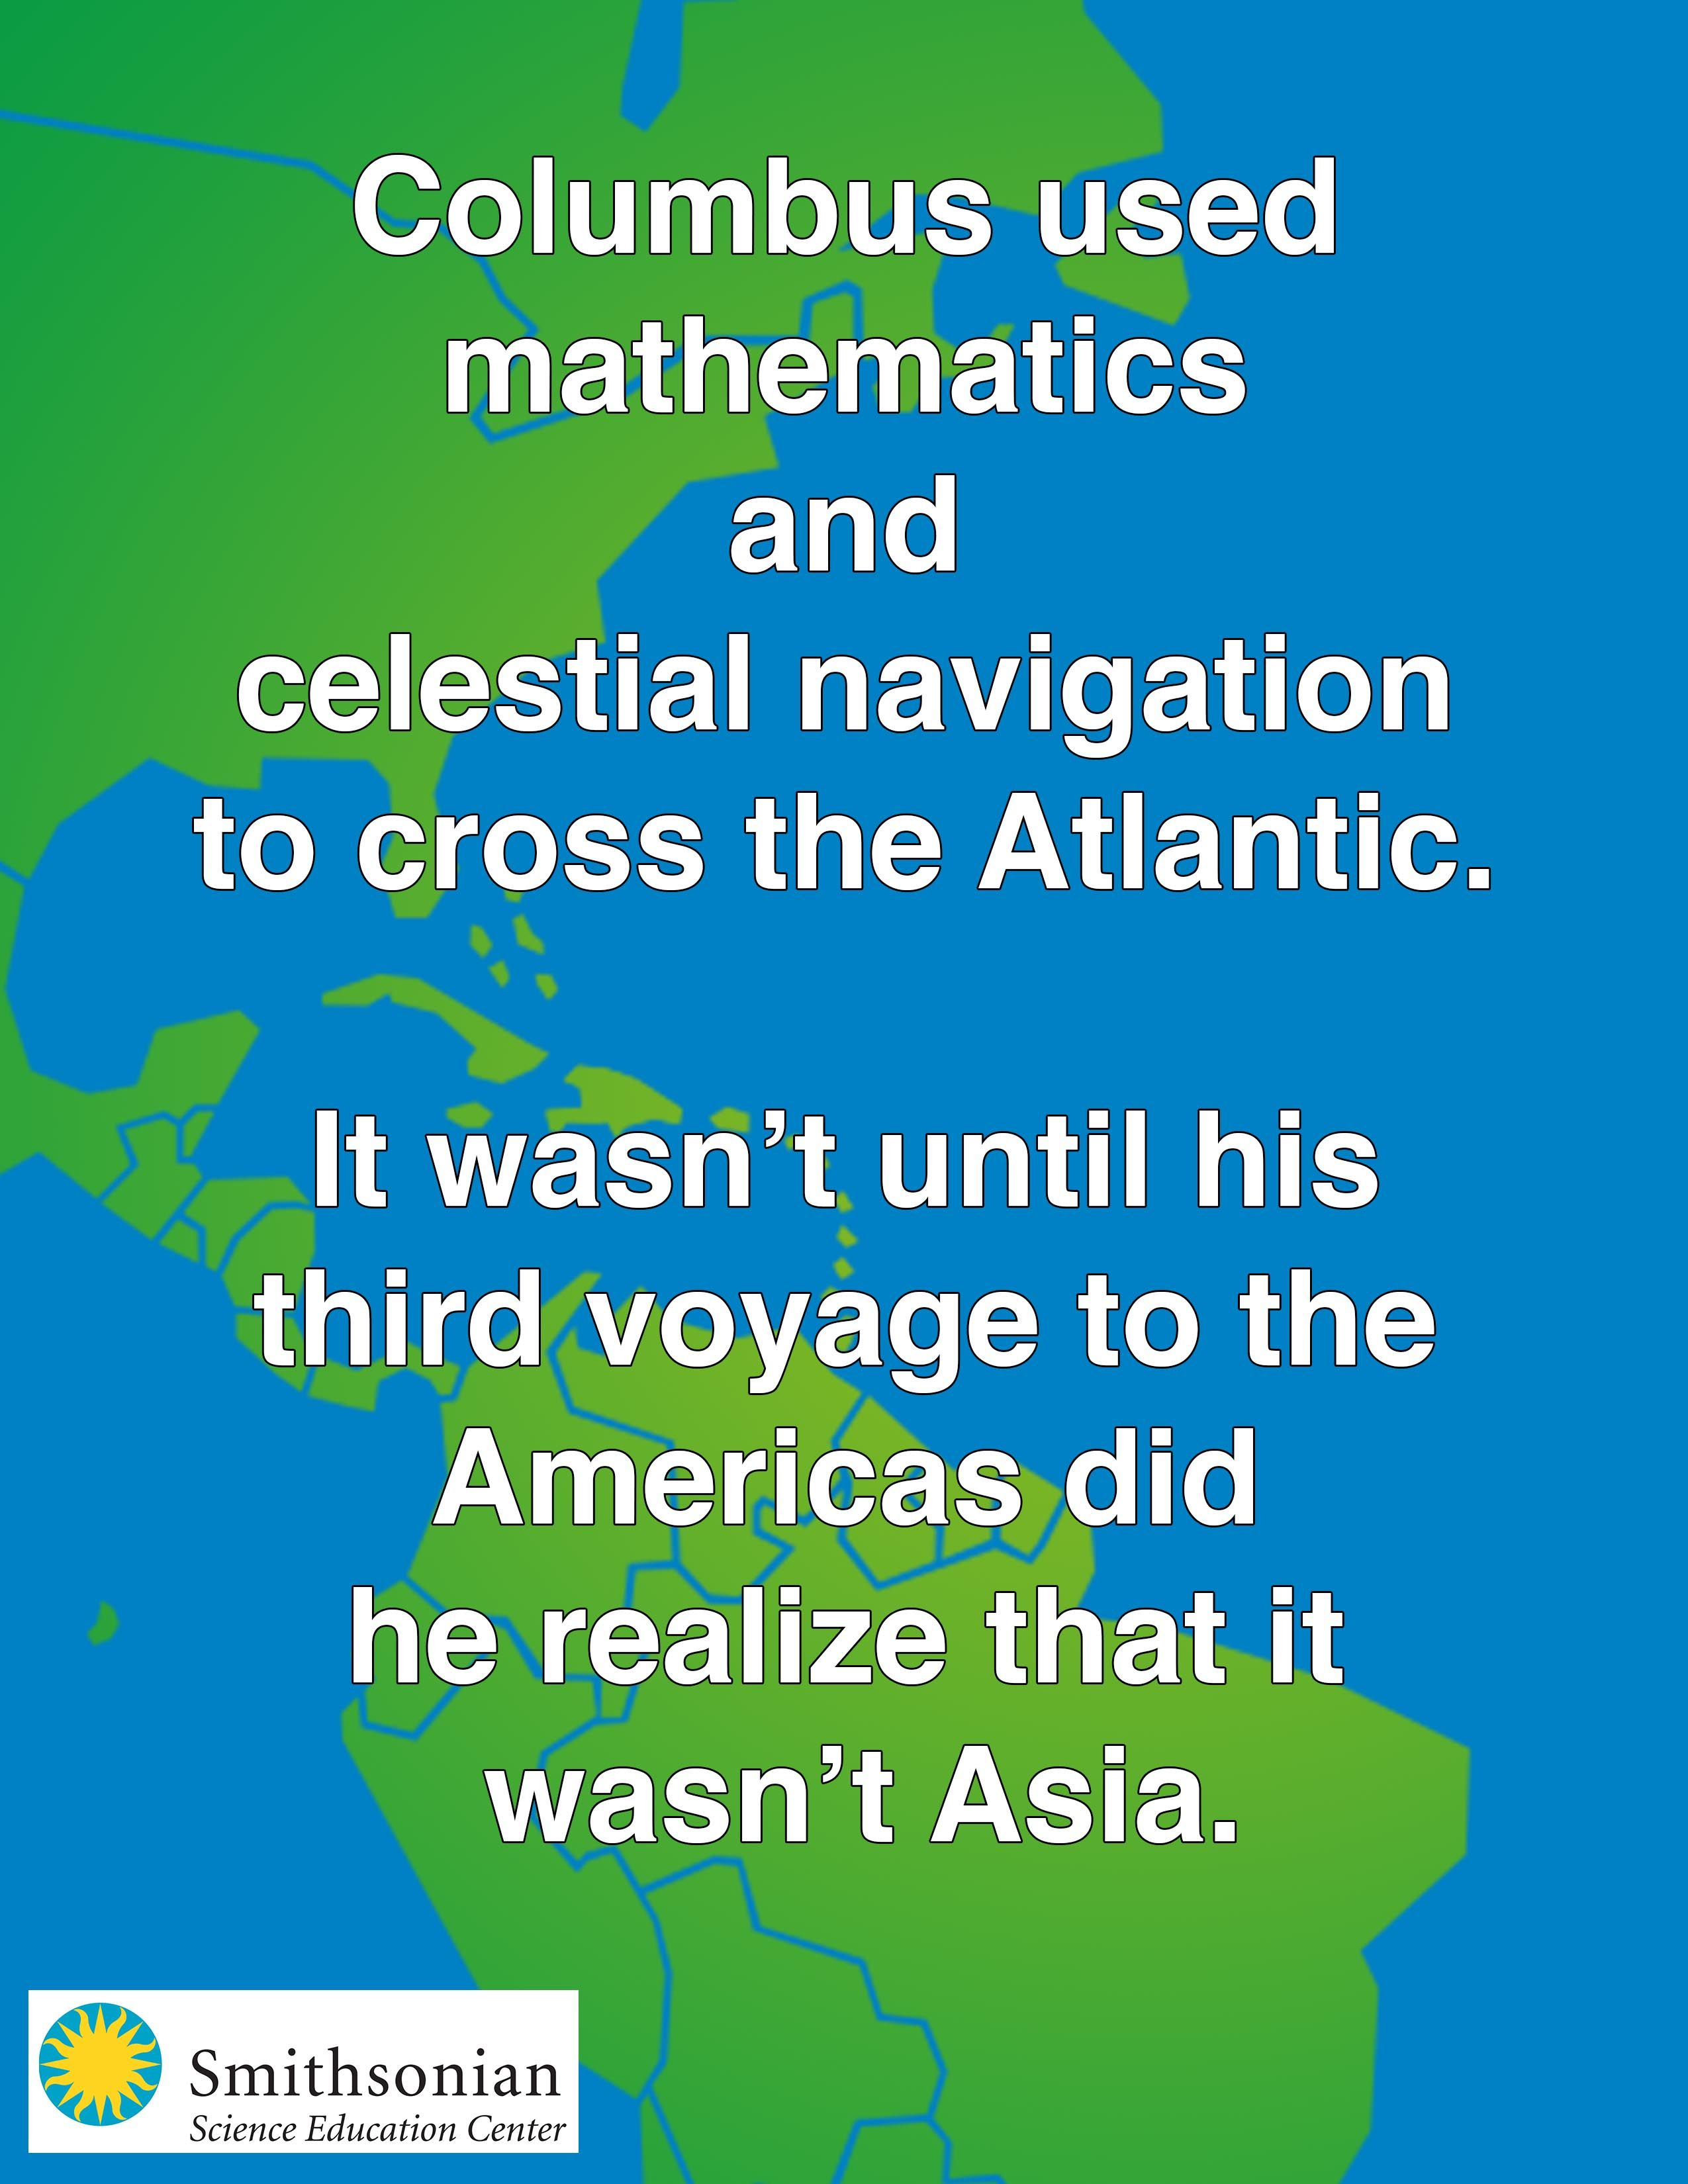 fragment of a letter by christopher columbus columbus wrote christopher columbus relied on science to cross the atlantic by using math and celestial navigation